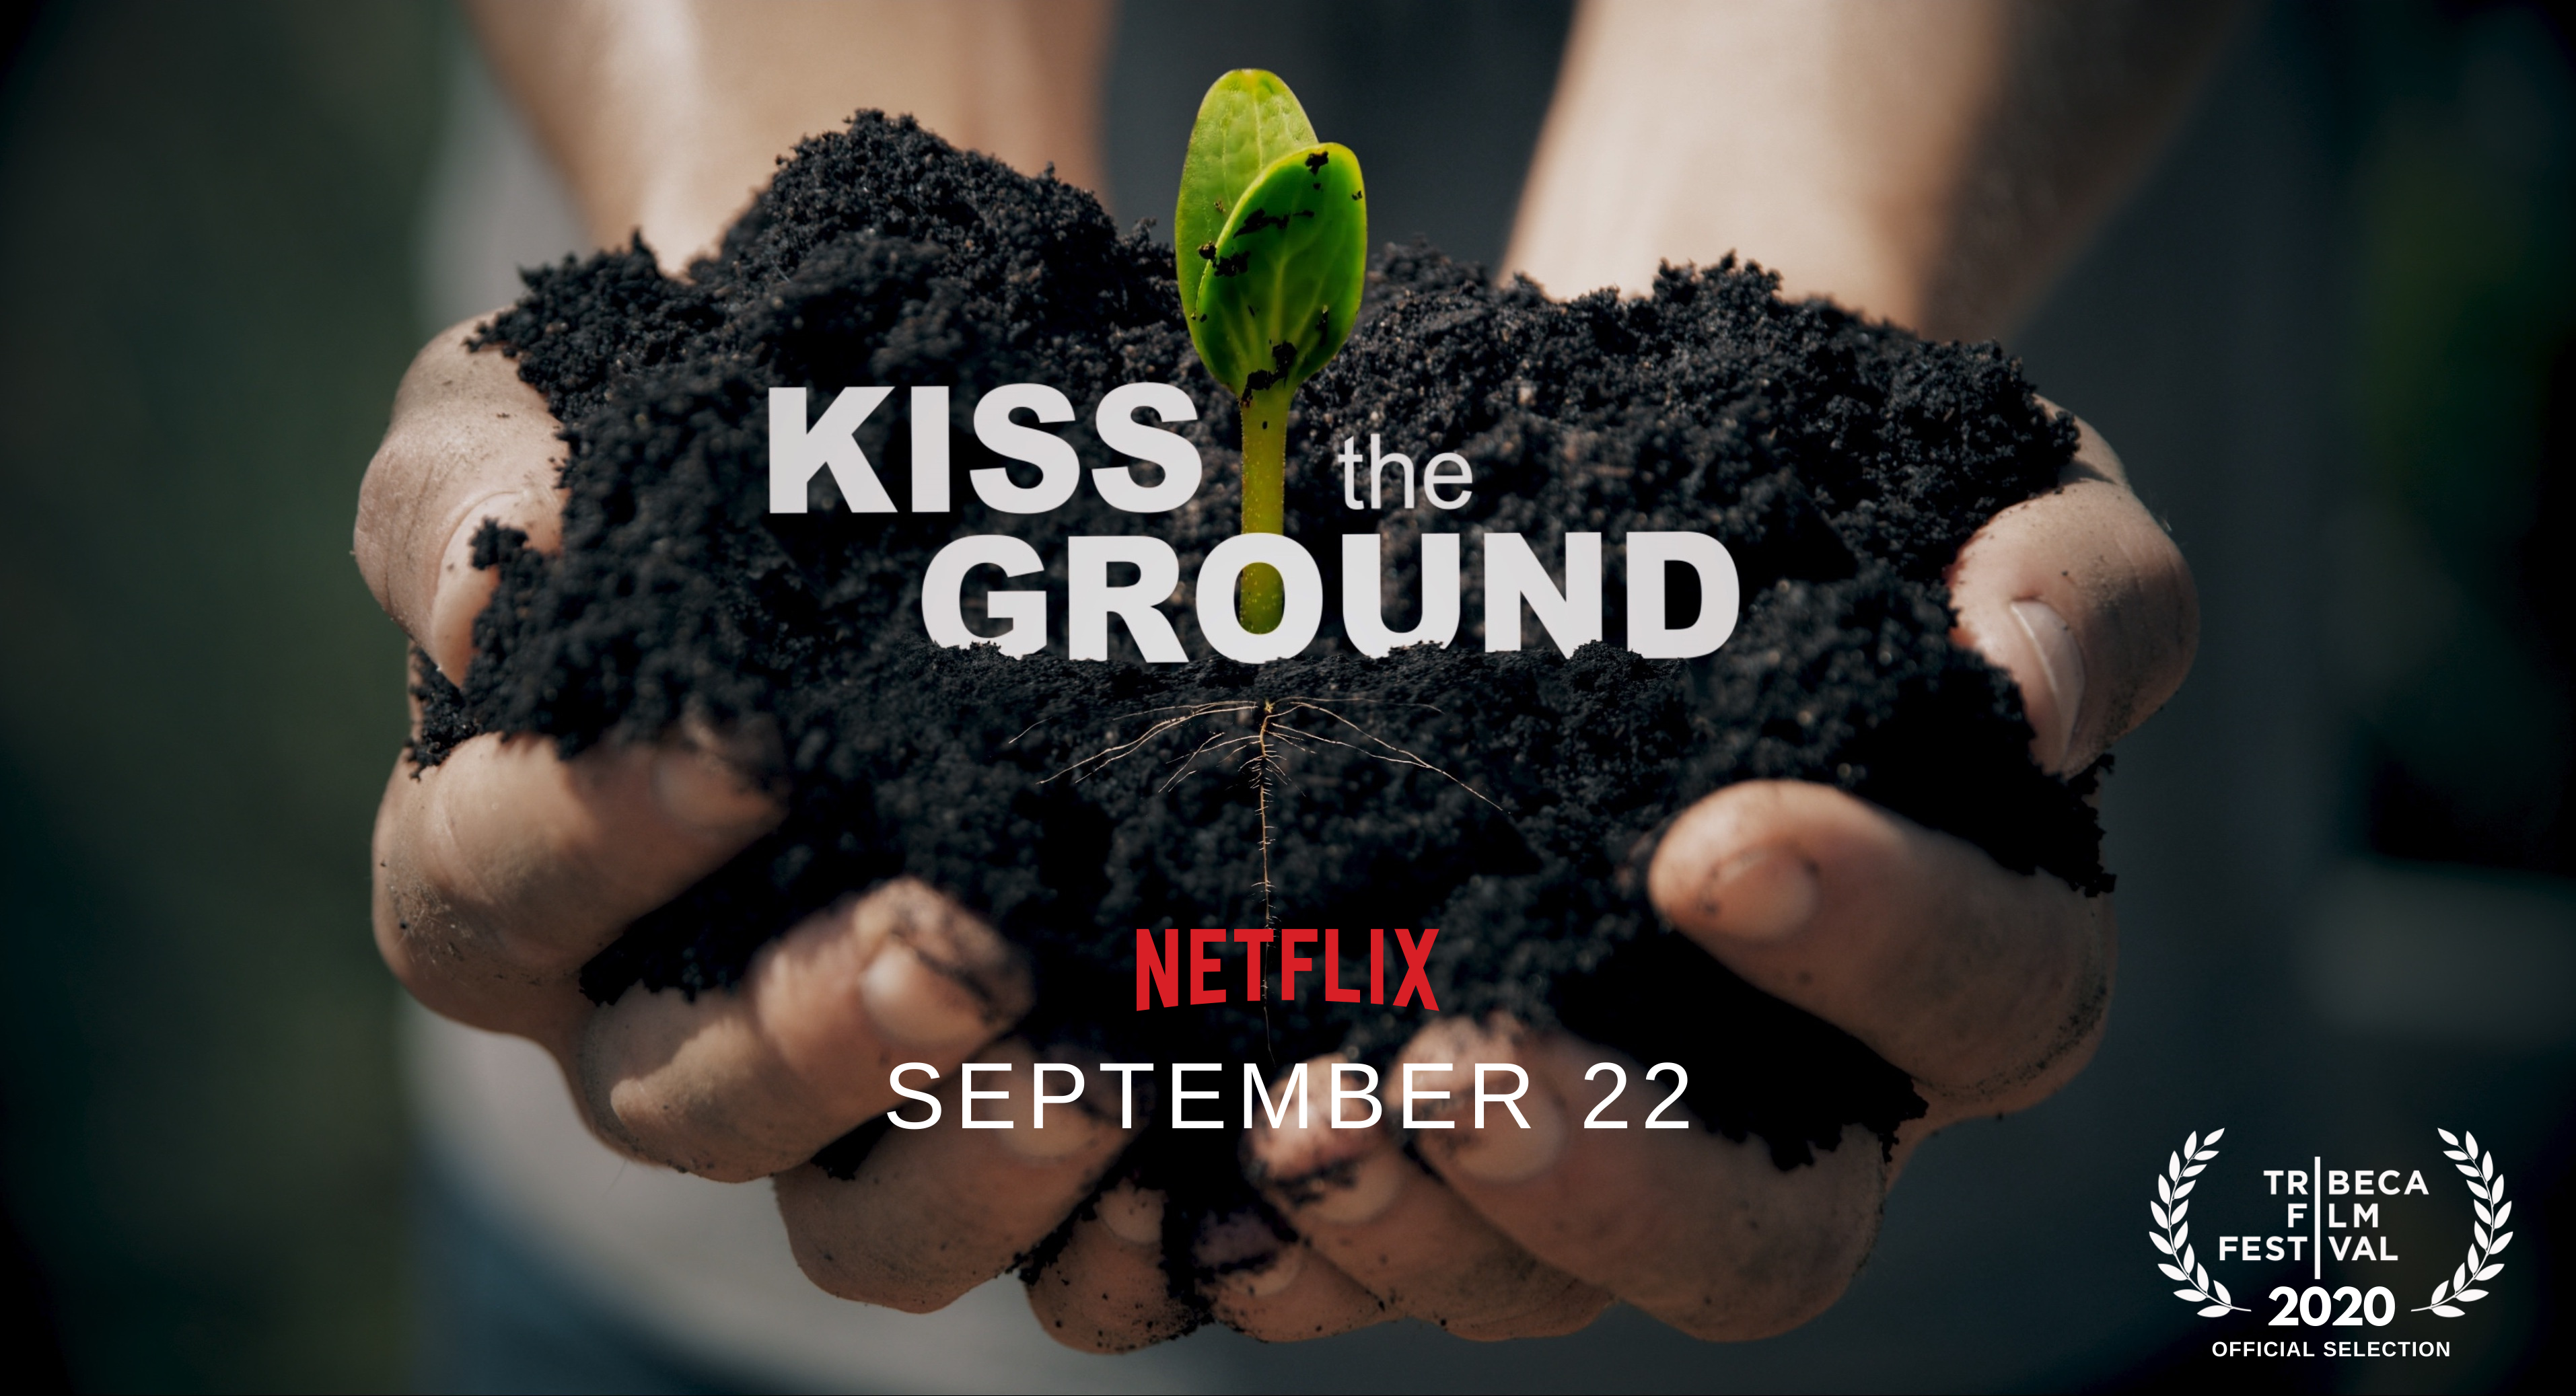 Exclusion in the Environmental Movement, a Kiss The Ground Film Critique